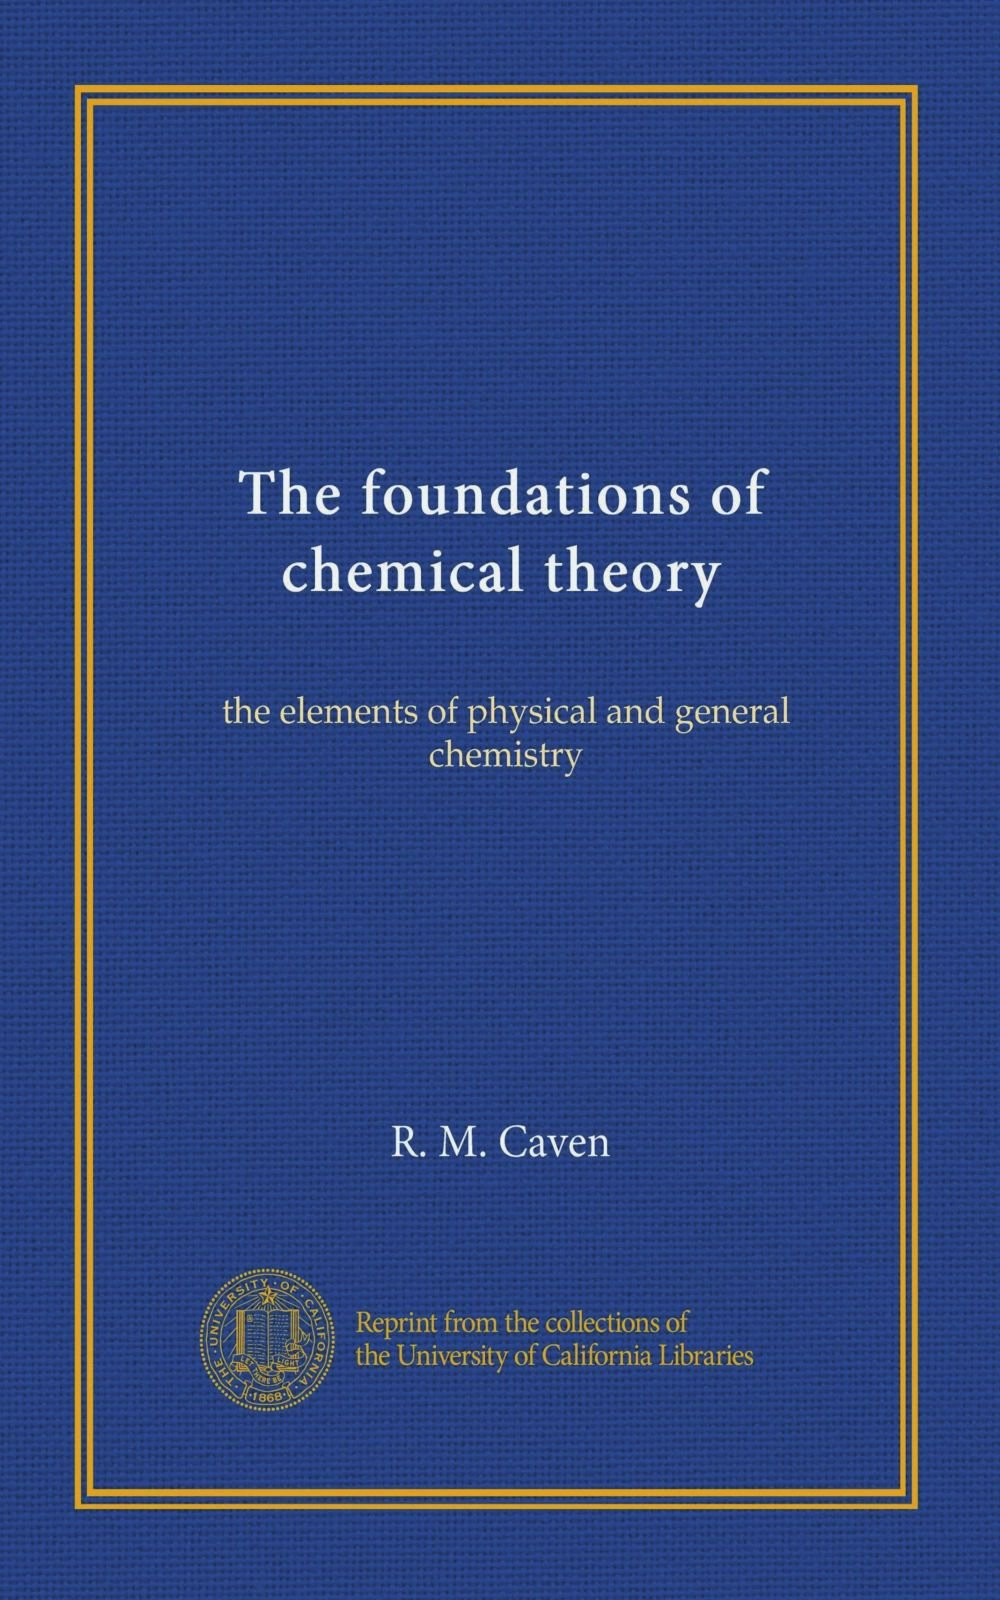 Download The foundations of chemical theory: the elements of physical and general chemistry pdf epub